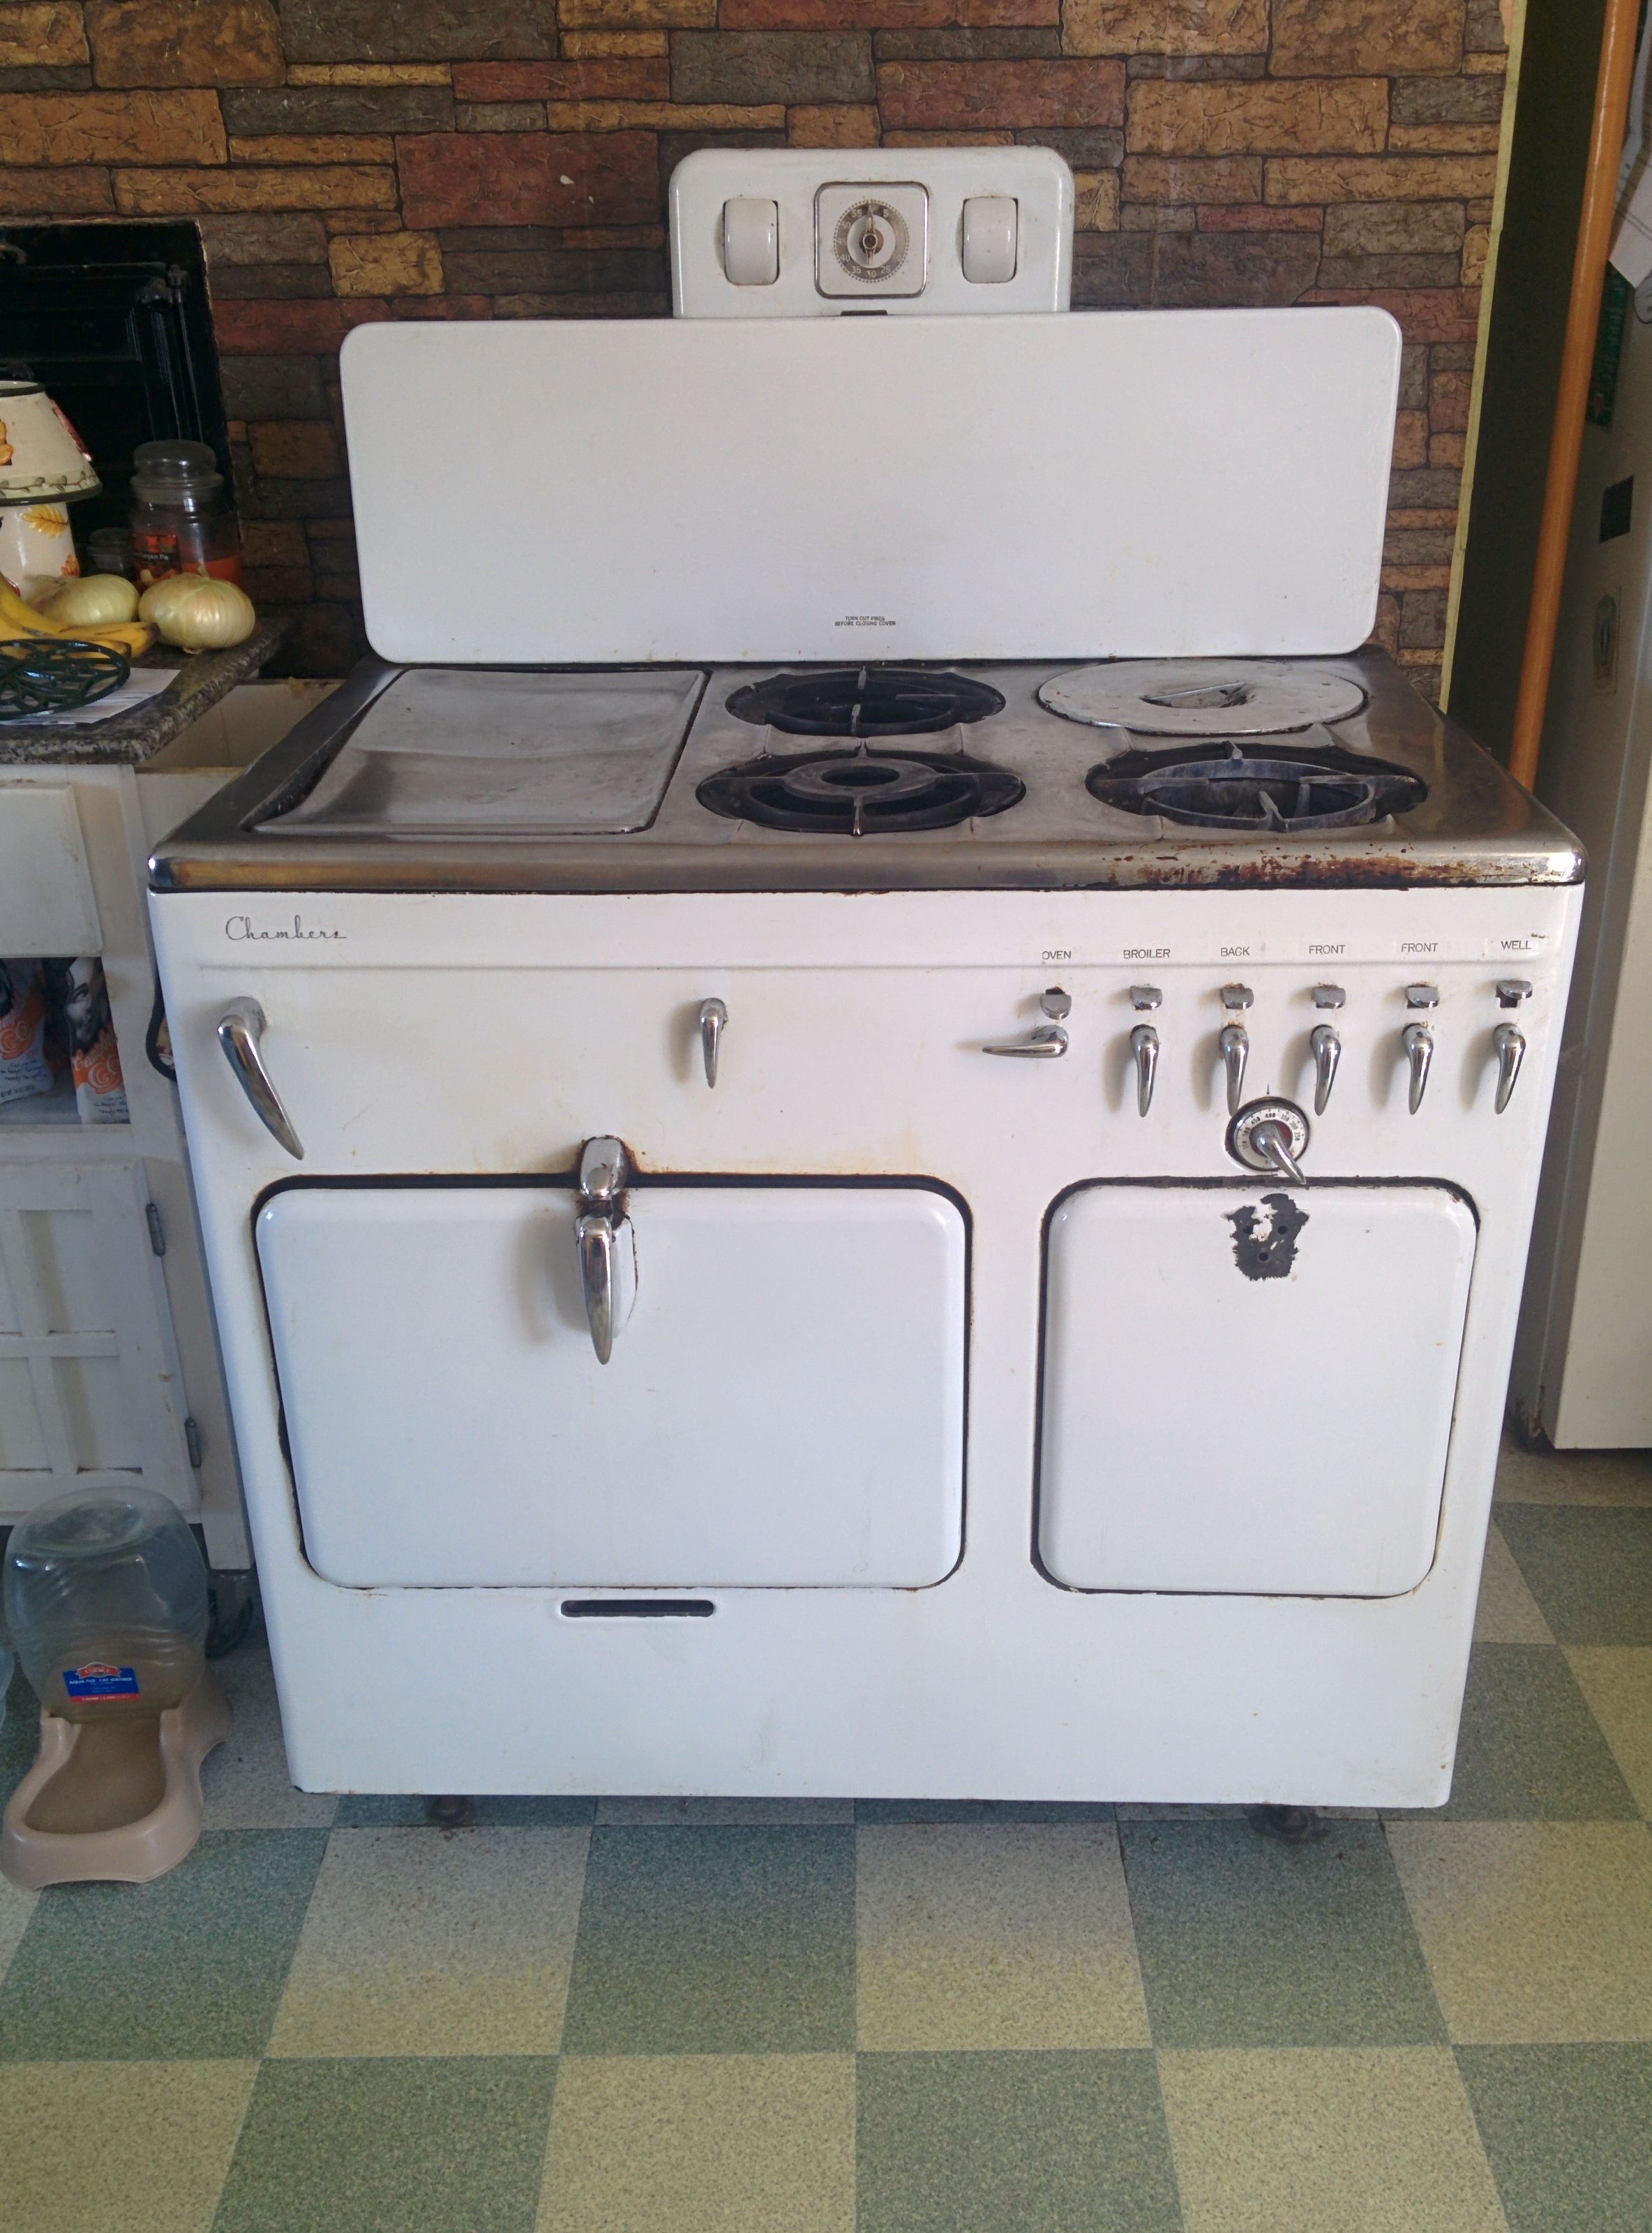 chambers stove   Blogging Around With The Original Domestic God